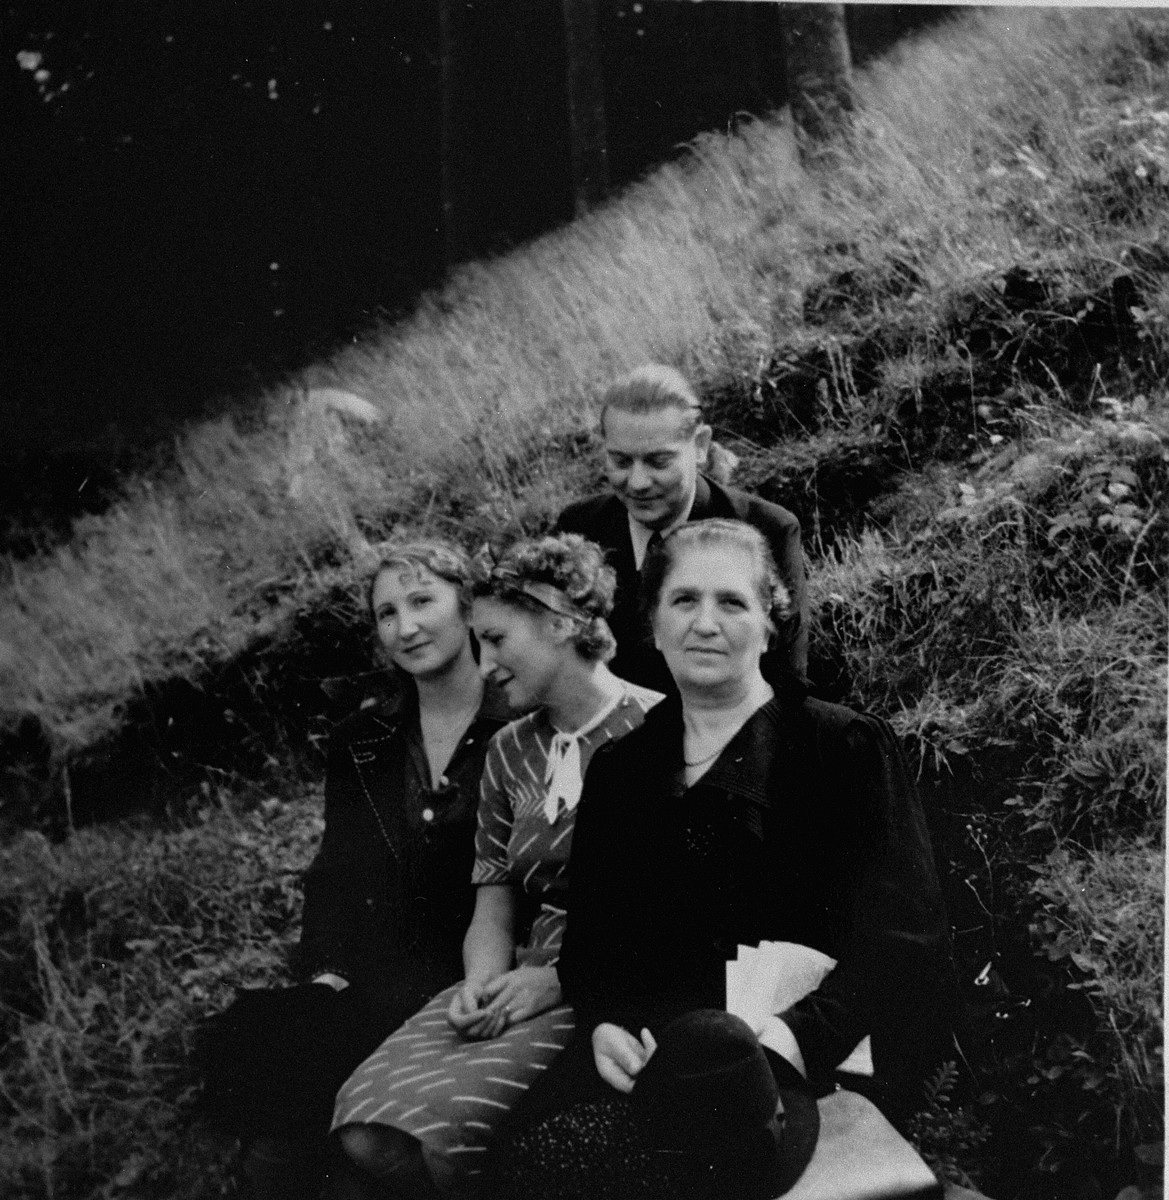 Dr. Joseph Jaksy poses on a hillside in Bratislava with members of the Suran family, whom he rescued during WWII.   Pictured with Dr. Jaksy from left to right are Valeria, Lydia and Mrs. Suran.  The Surans were among the 25 Jews rescued by Dr. Joseph Jaksy during WWII.  Jaksy engineered the fictitious purchase of the Suran's home in Bratislava; he provided false papers that allowed the Suran children to escape to South America; he registered the elder Surans as his own Slovak domestics; and, after a Gestapo search of the house, he provided Mrs. Suran with false papers and drove her to safety.